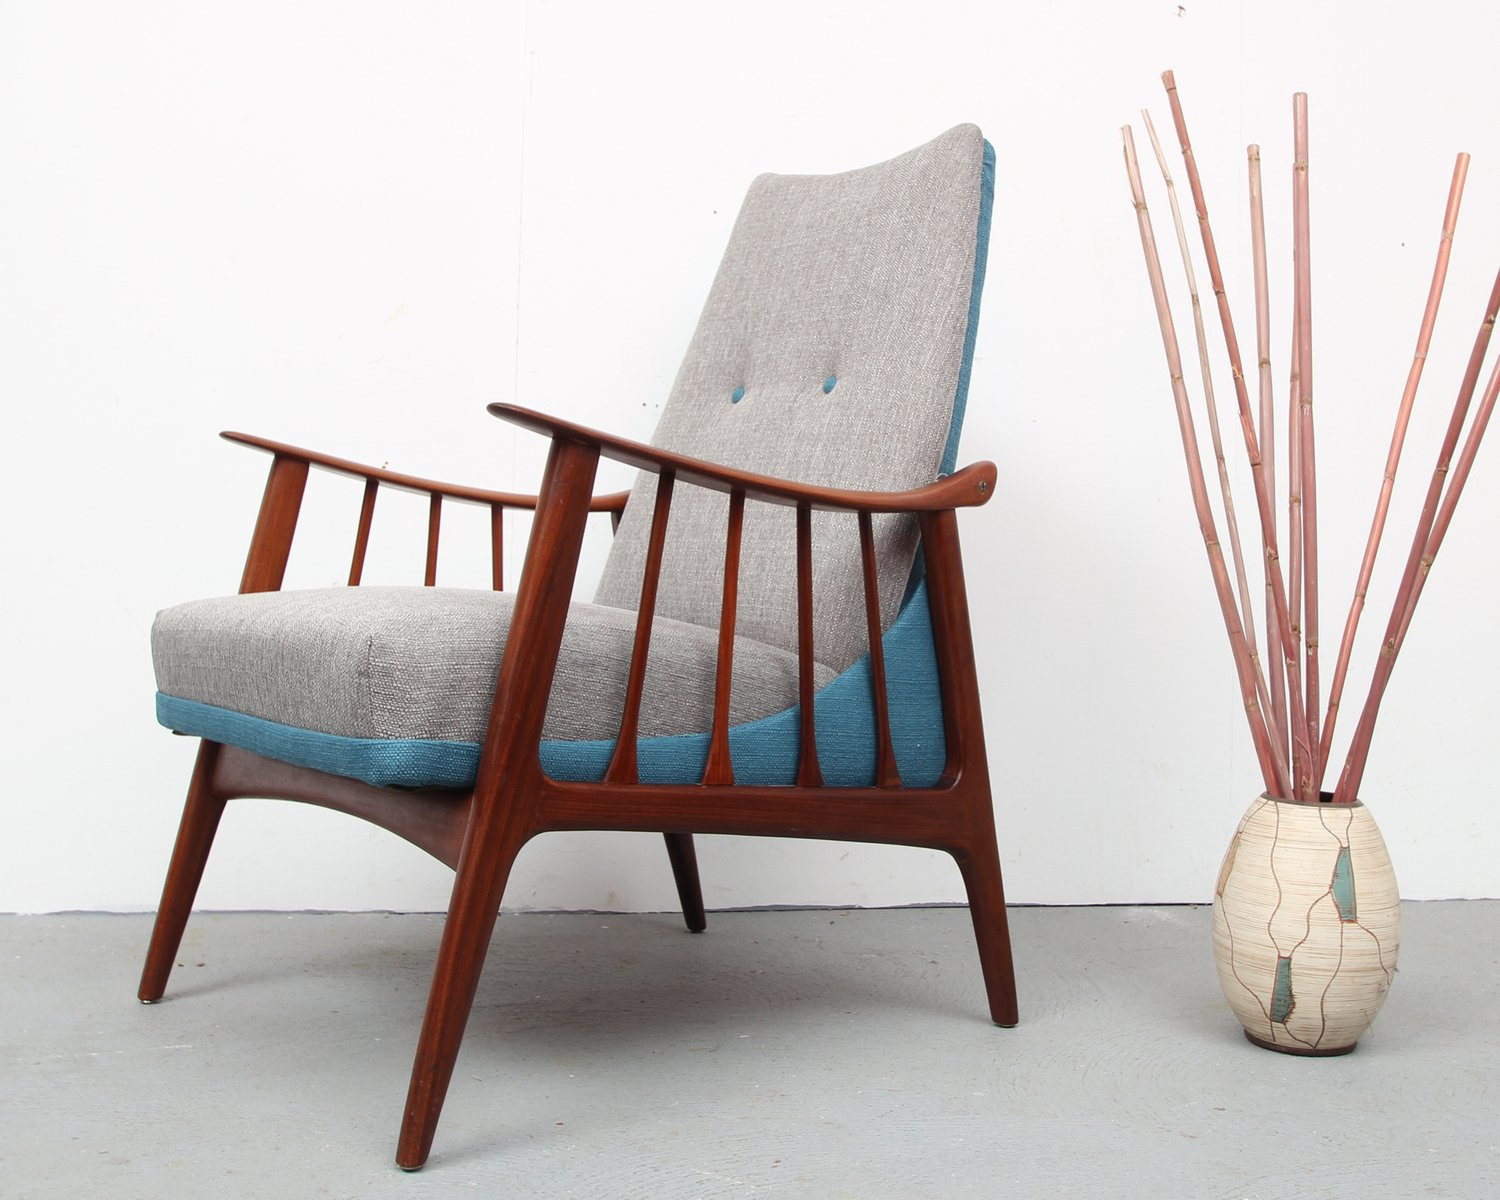 Mid Century Teak Lounge Chair, 1950s for sale at Pamono